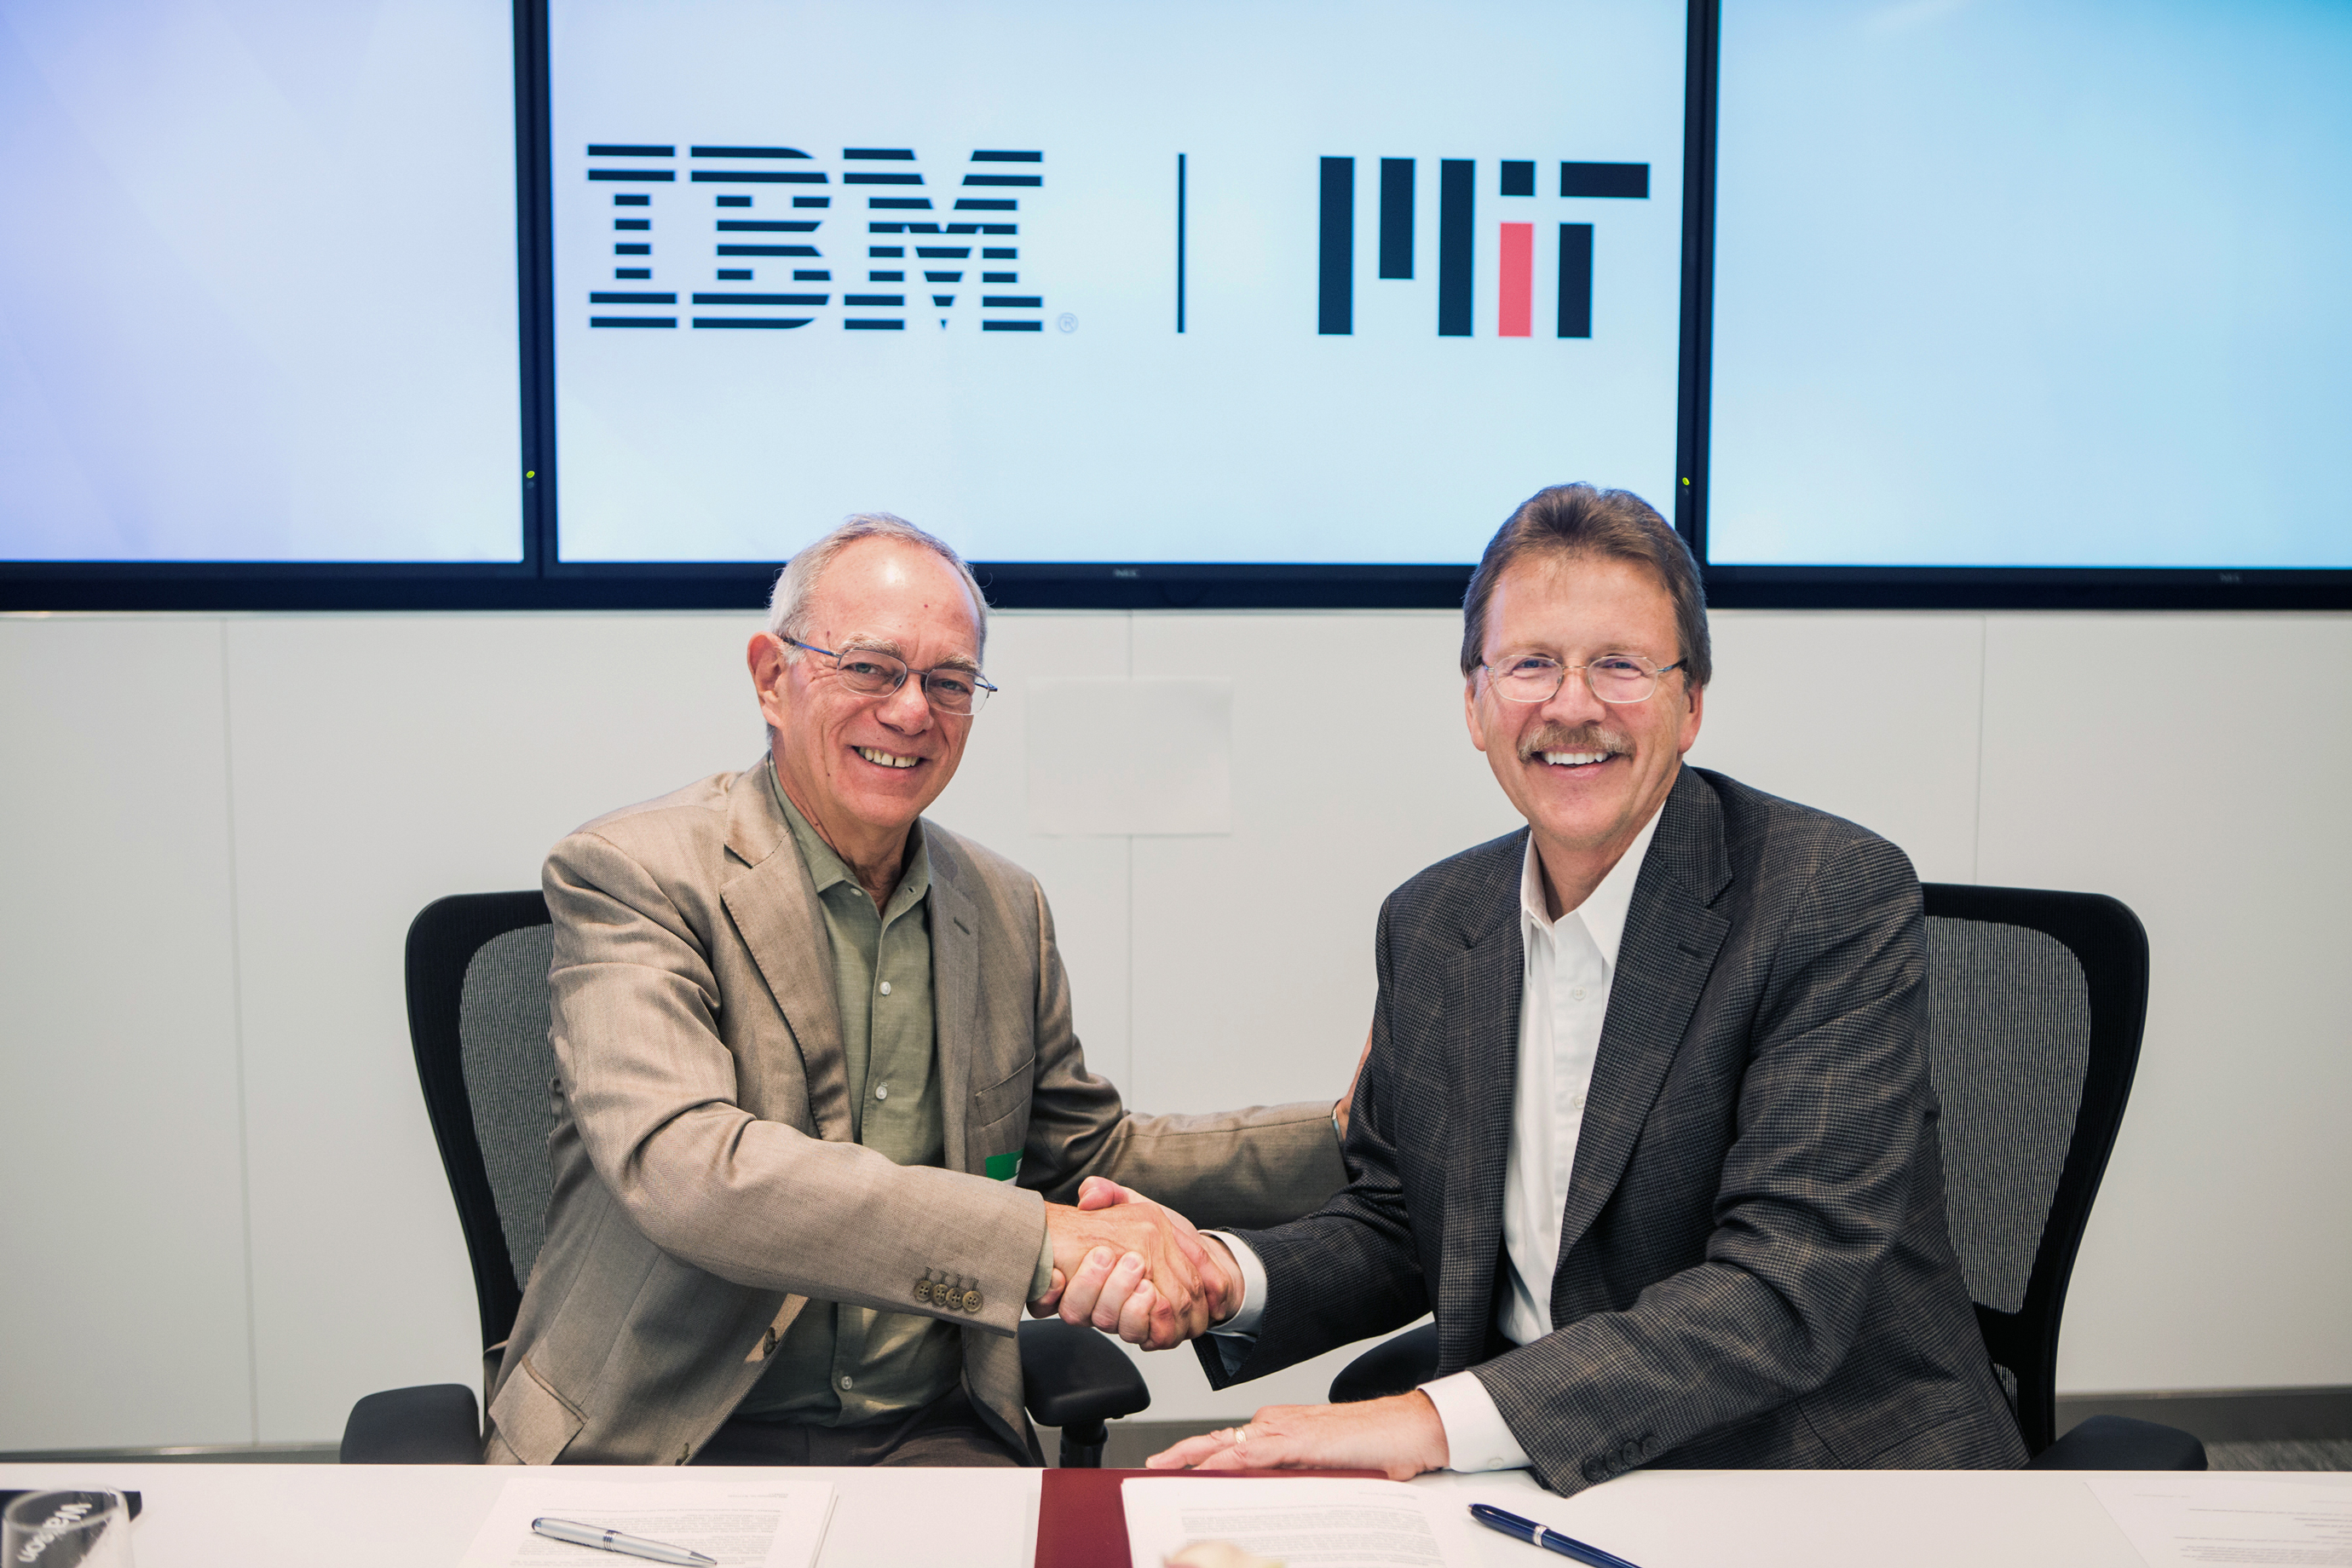 IBM and MIT team up for AI research